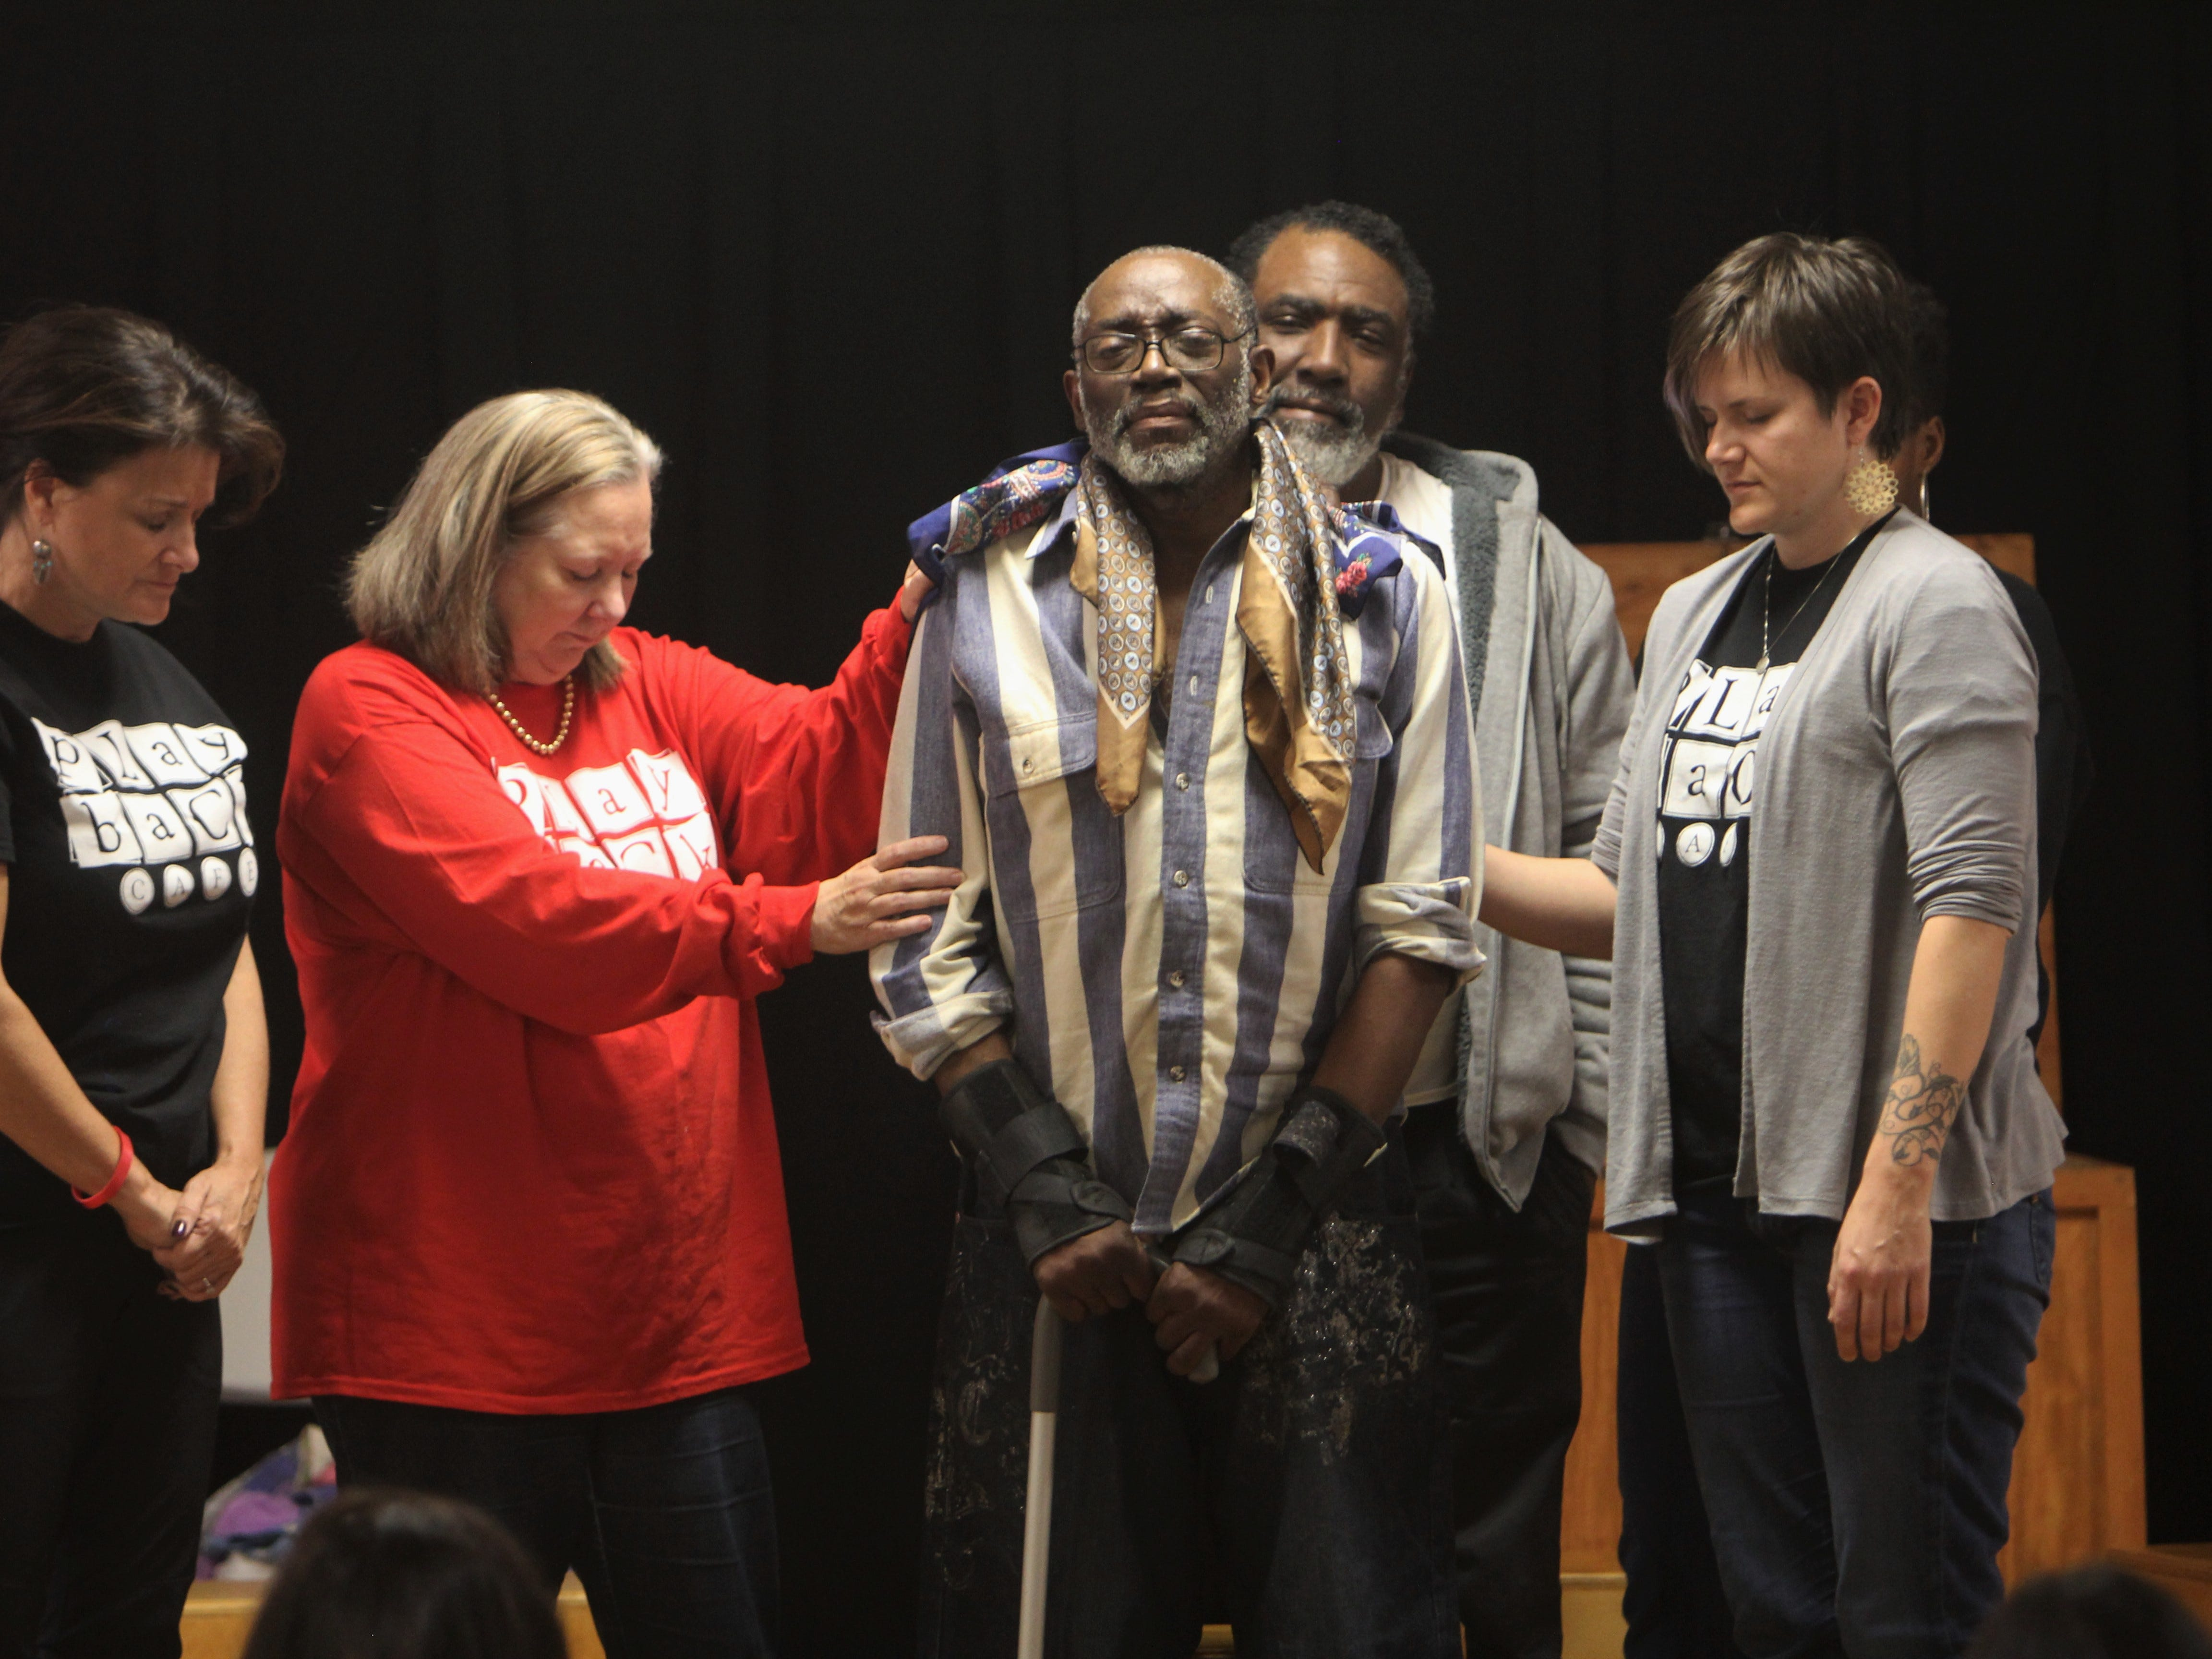 John Fuller, center, has been getting help, and helping people, at Triune Mercy Center in Greenville for 18 years. He said he is the number one fan of the Playback Cafe actors who listen to stories from homeless people and retell those stories immediately back.